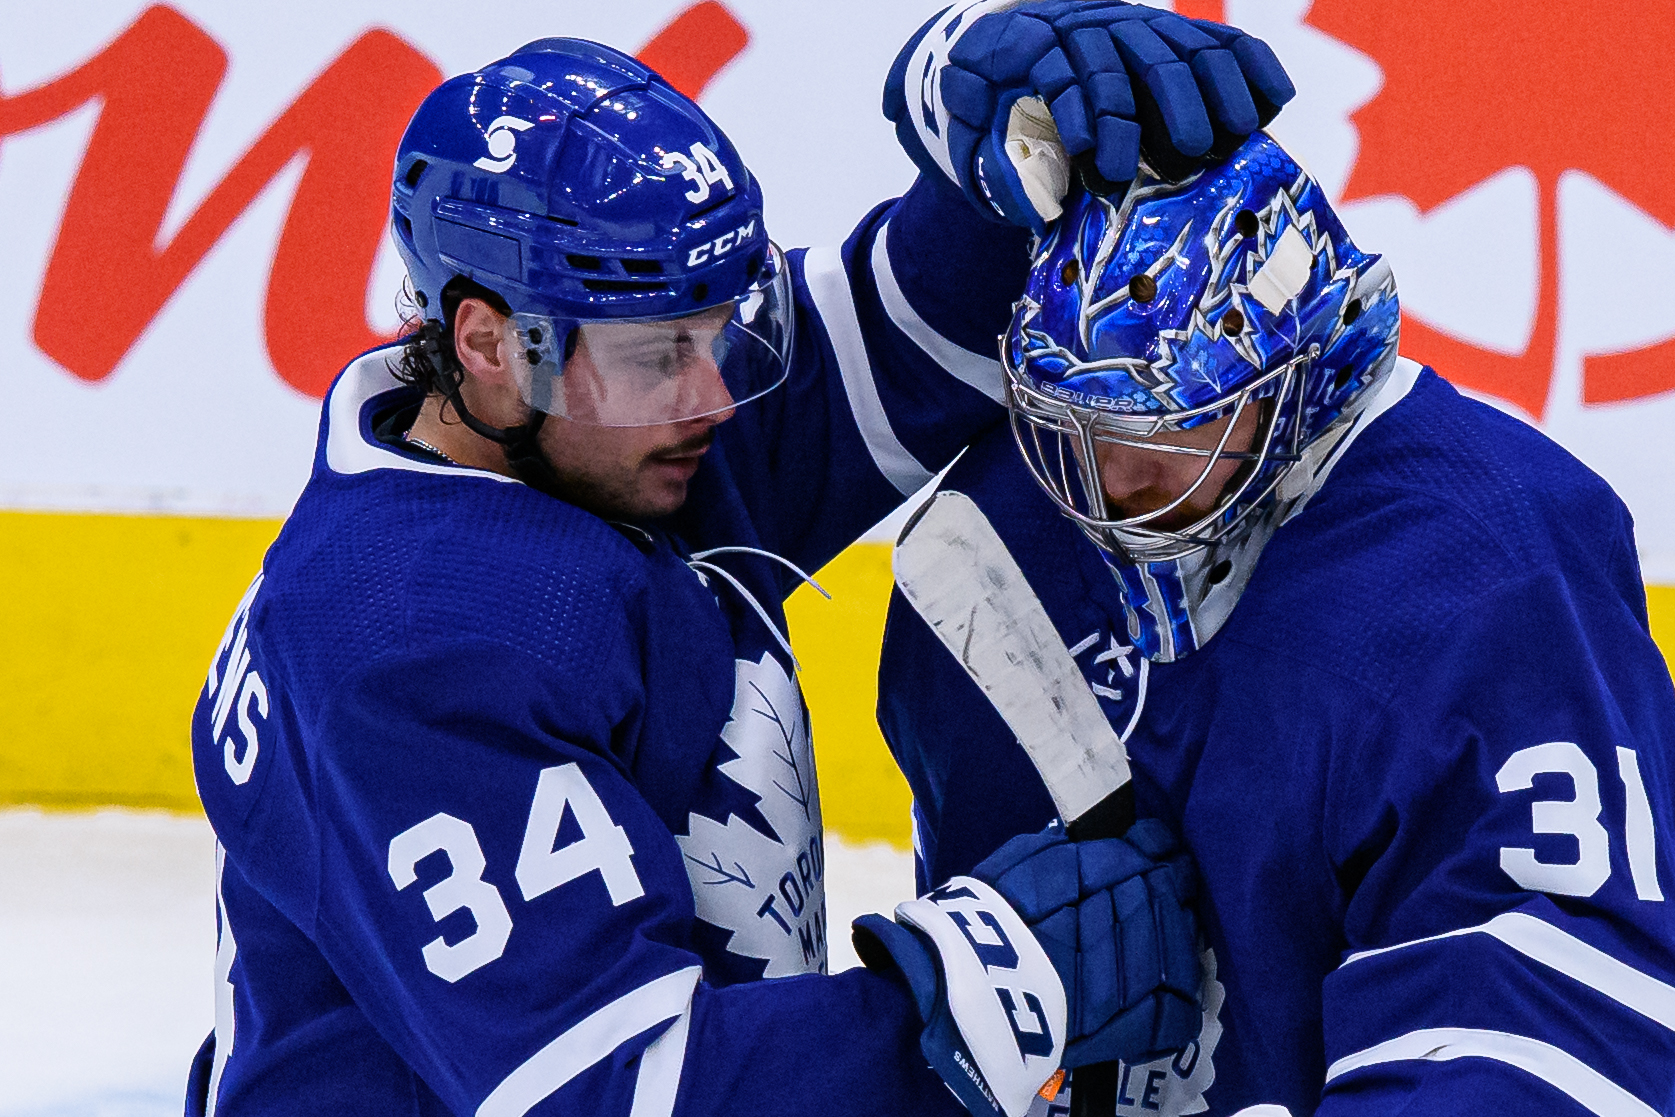 Postgame: Leafs Show Up For 15 Seconds, win 3-1